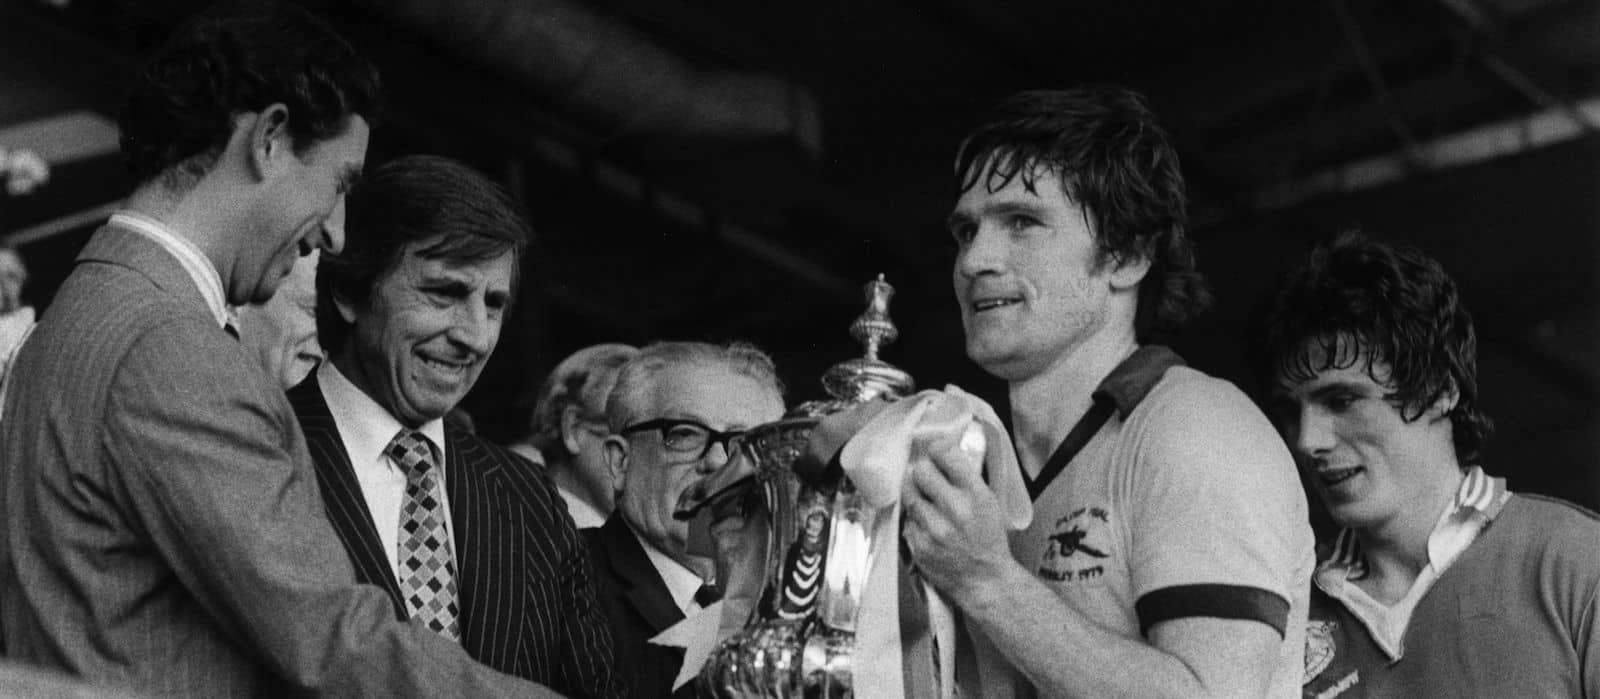 FA Cup Final Series 1978/9: Arsenal 3-2 Man United – Five minutes of madness